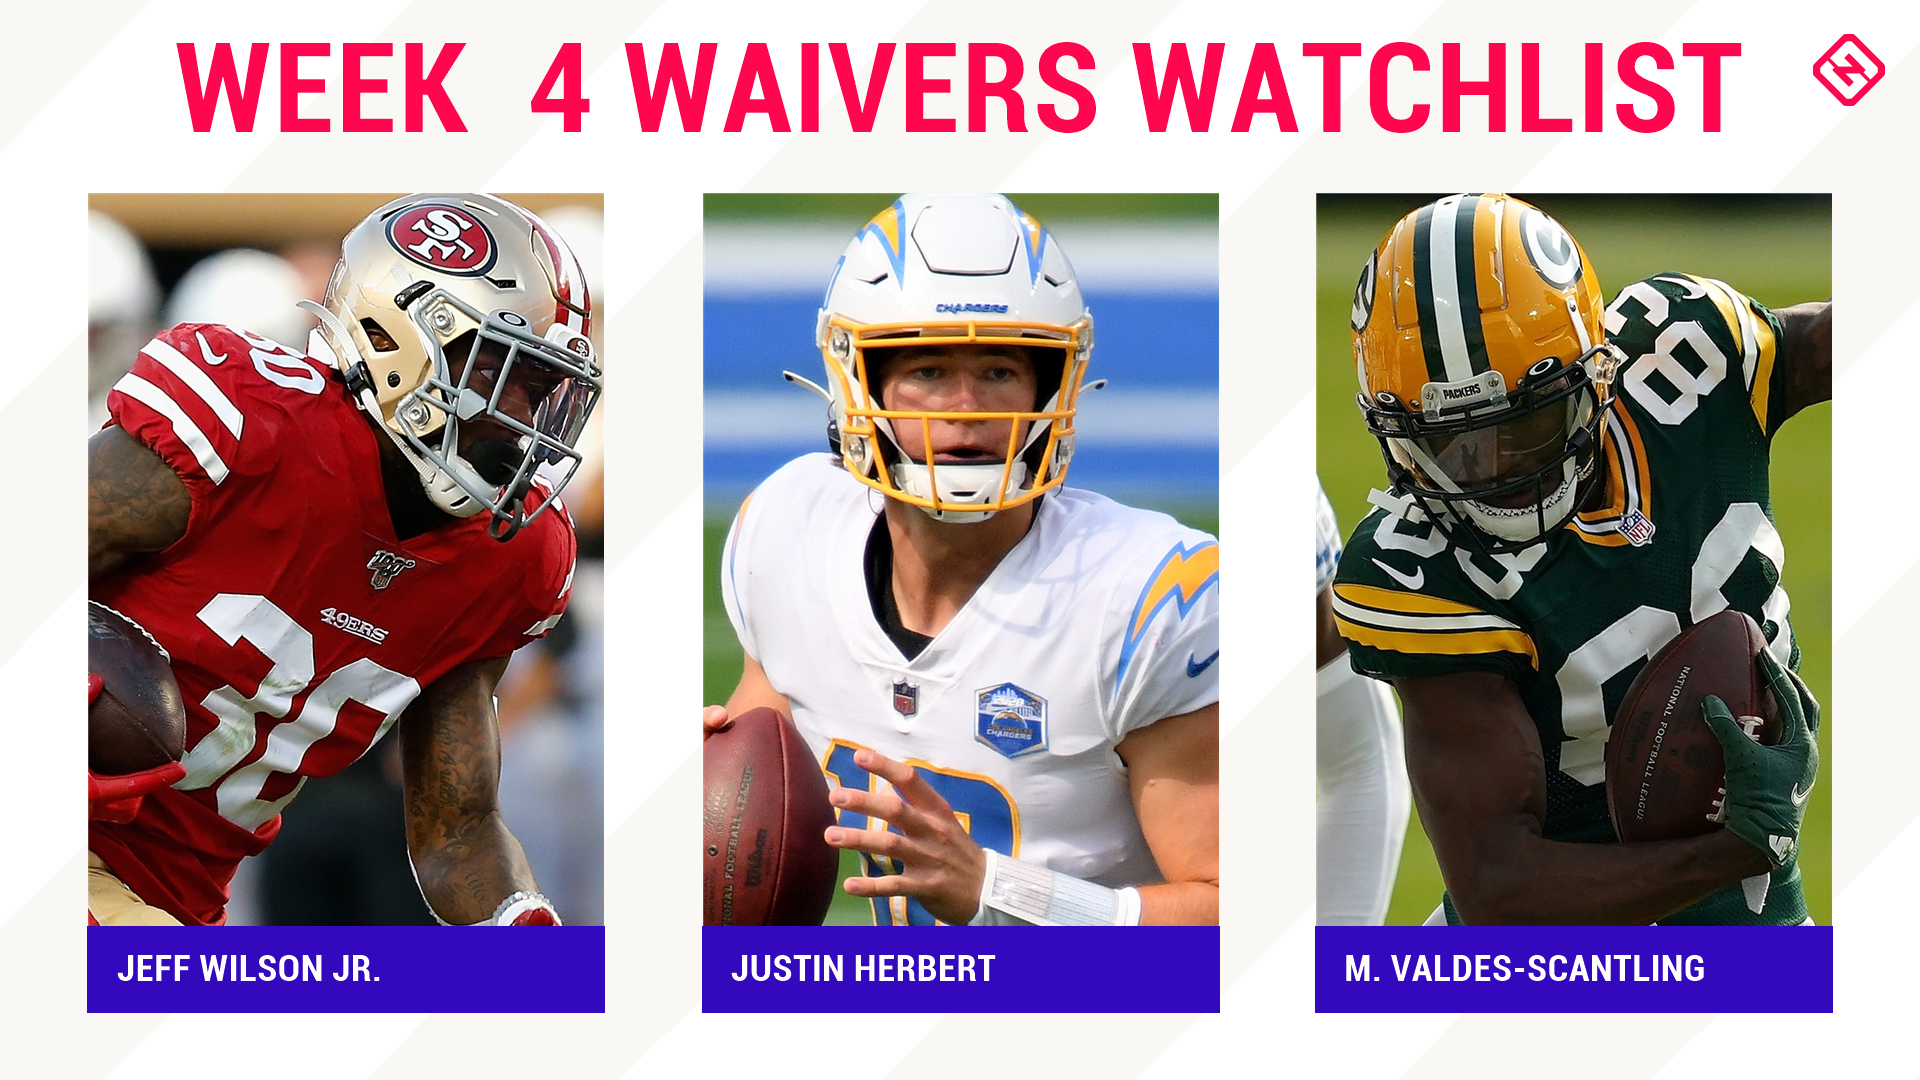 Fantasy Football Waiver Wire Watchlist for Week 4: Streaming targets, free agent sleepers include Jeff Wilson Jr., Justin Herbert, Marquez Valdes-Scantling 1